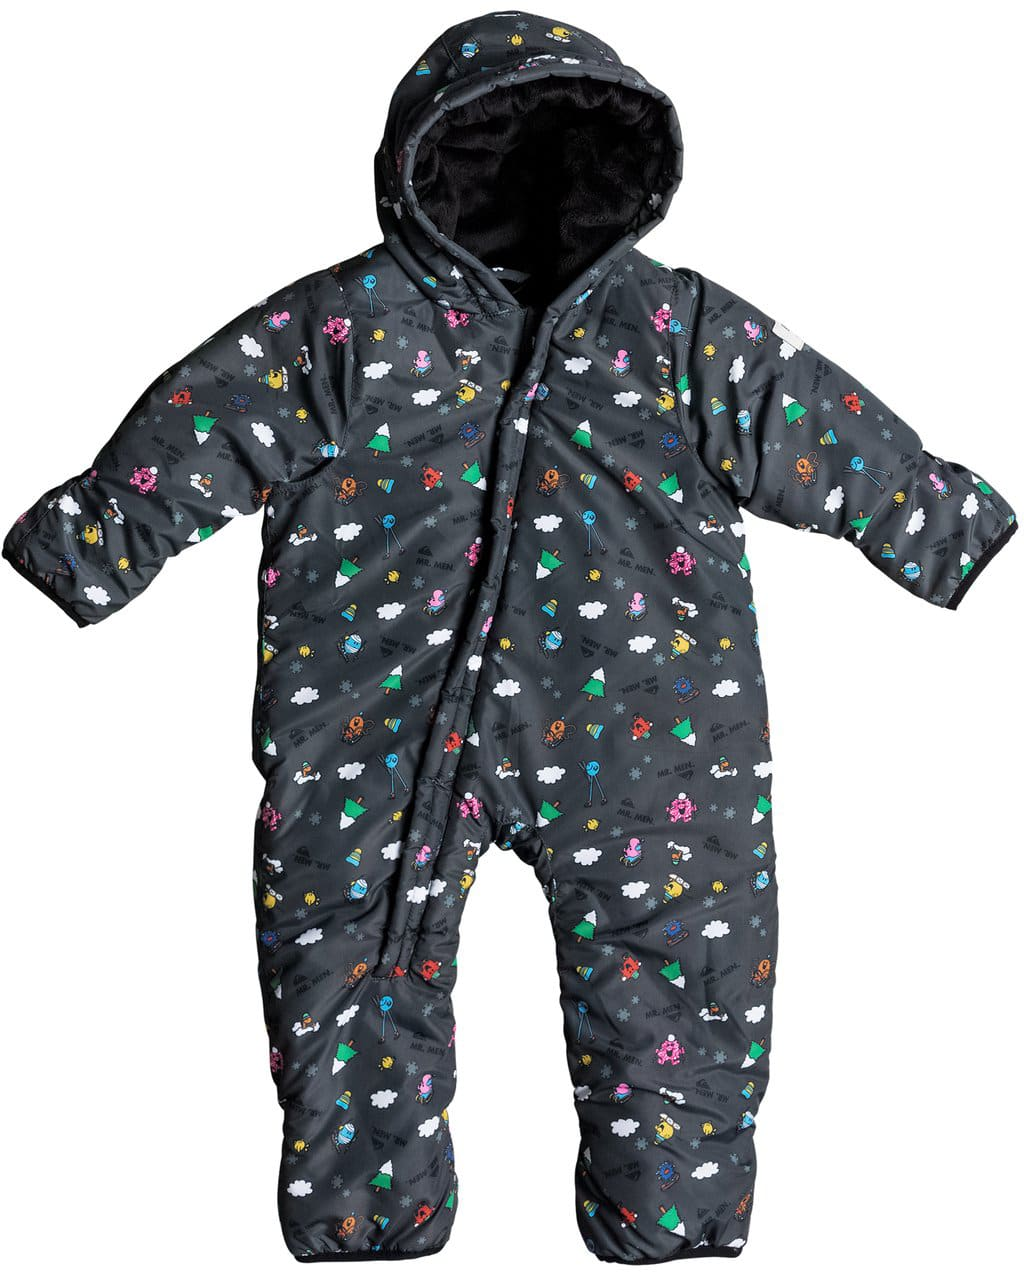 Click here for Quiksilver Mr Men Baby Snowsuit prices